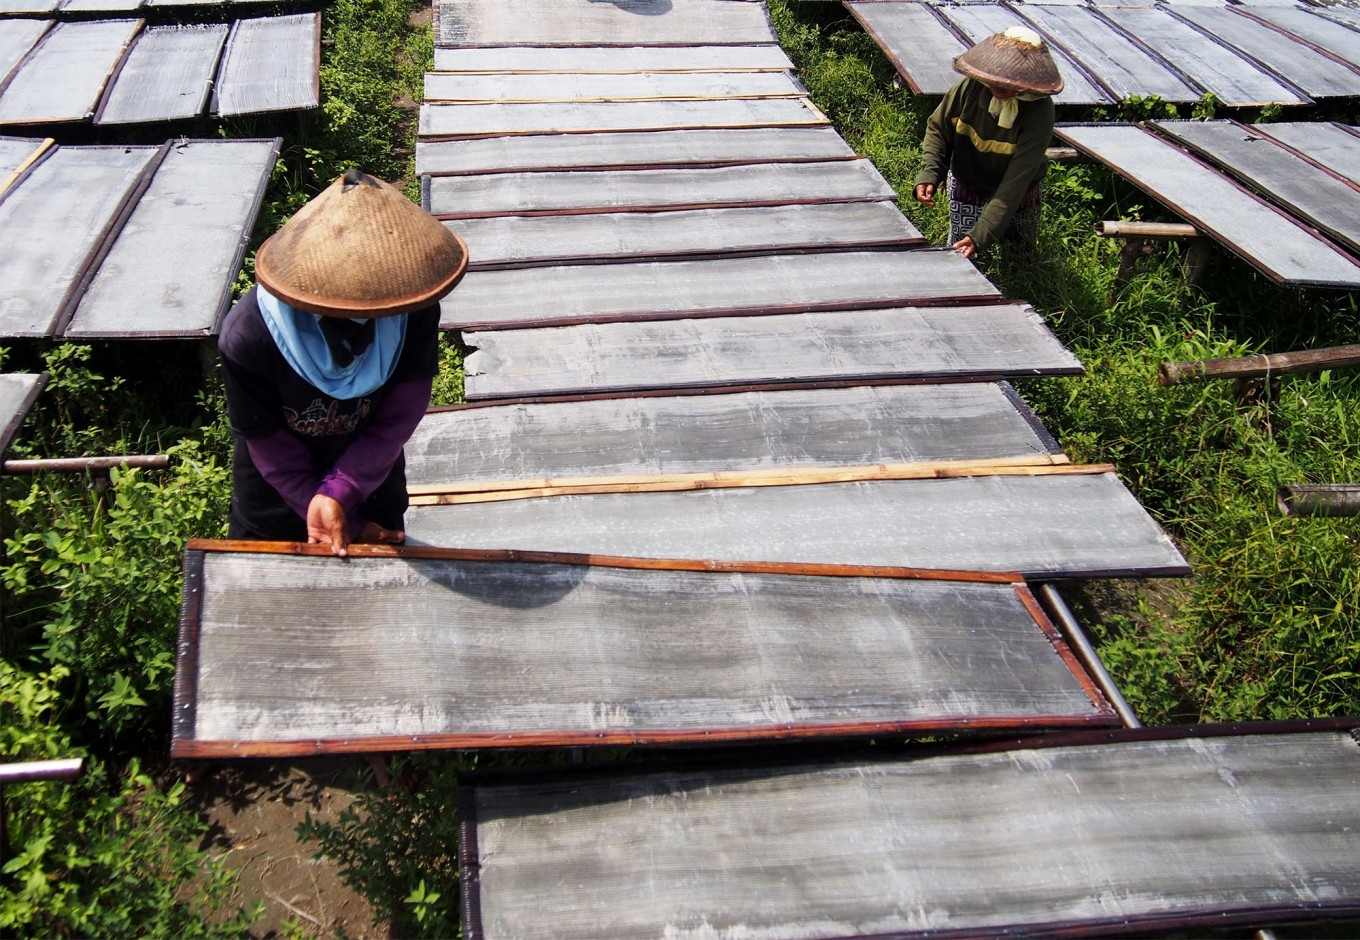 Two workers arrange trays of vermicelli to be dried in the sun. JP/Ganug Nugroho Adi